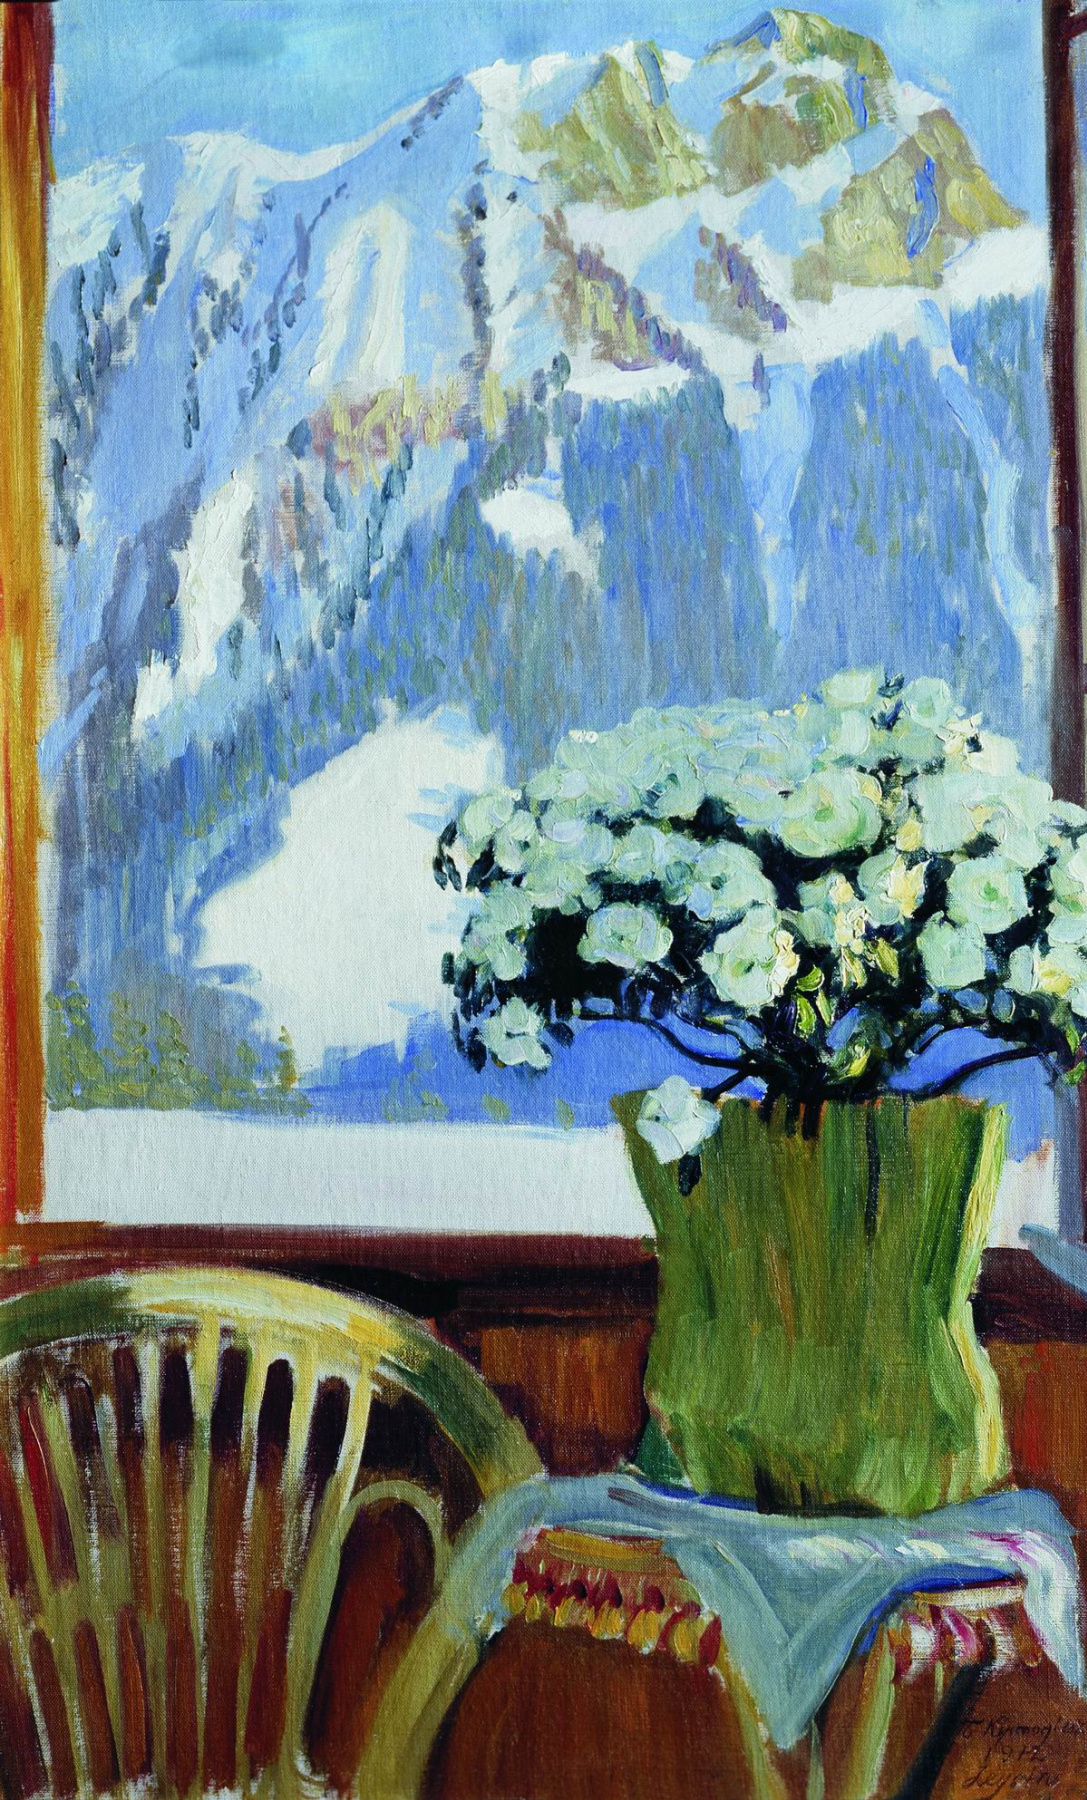 Boris Kustodiev. Flowers on the balcony with mountains in the background